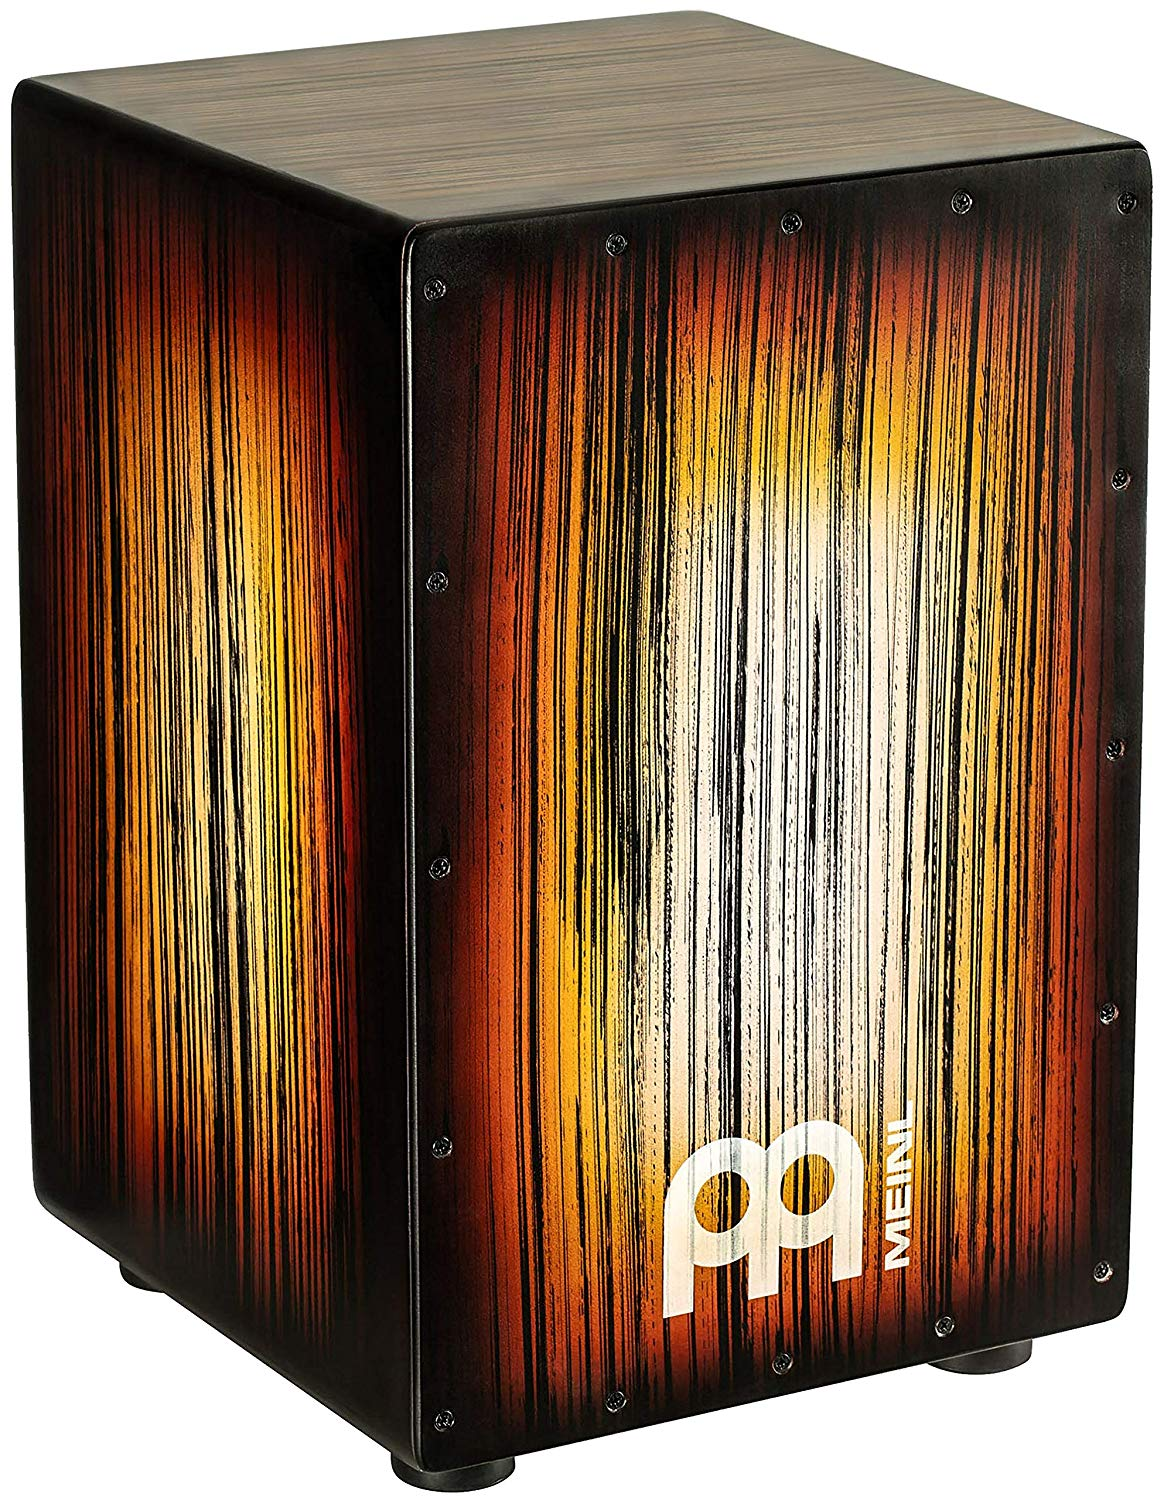 Meinl Percussion Cajon Box Drum with Internal Metal Strings for Adjustable Snare Effect-NOT Made in China - Amber Tiger Stripe Full Size, 2-YEAR WARRANTY HCAJ2AMTS